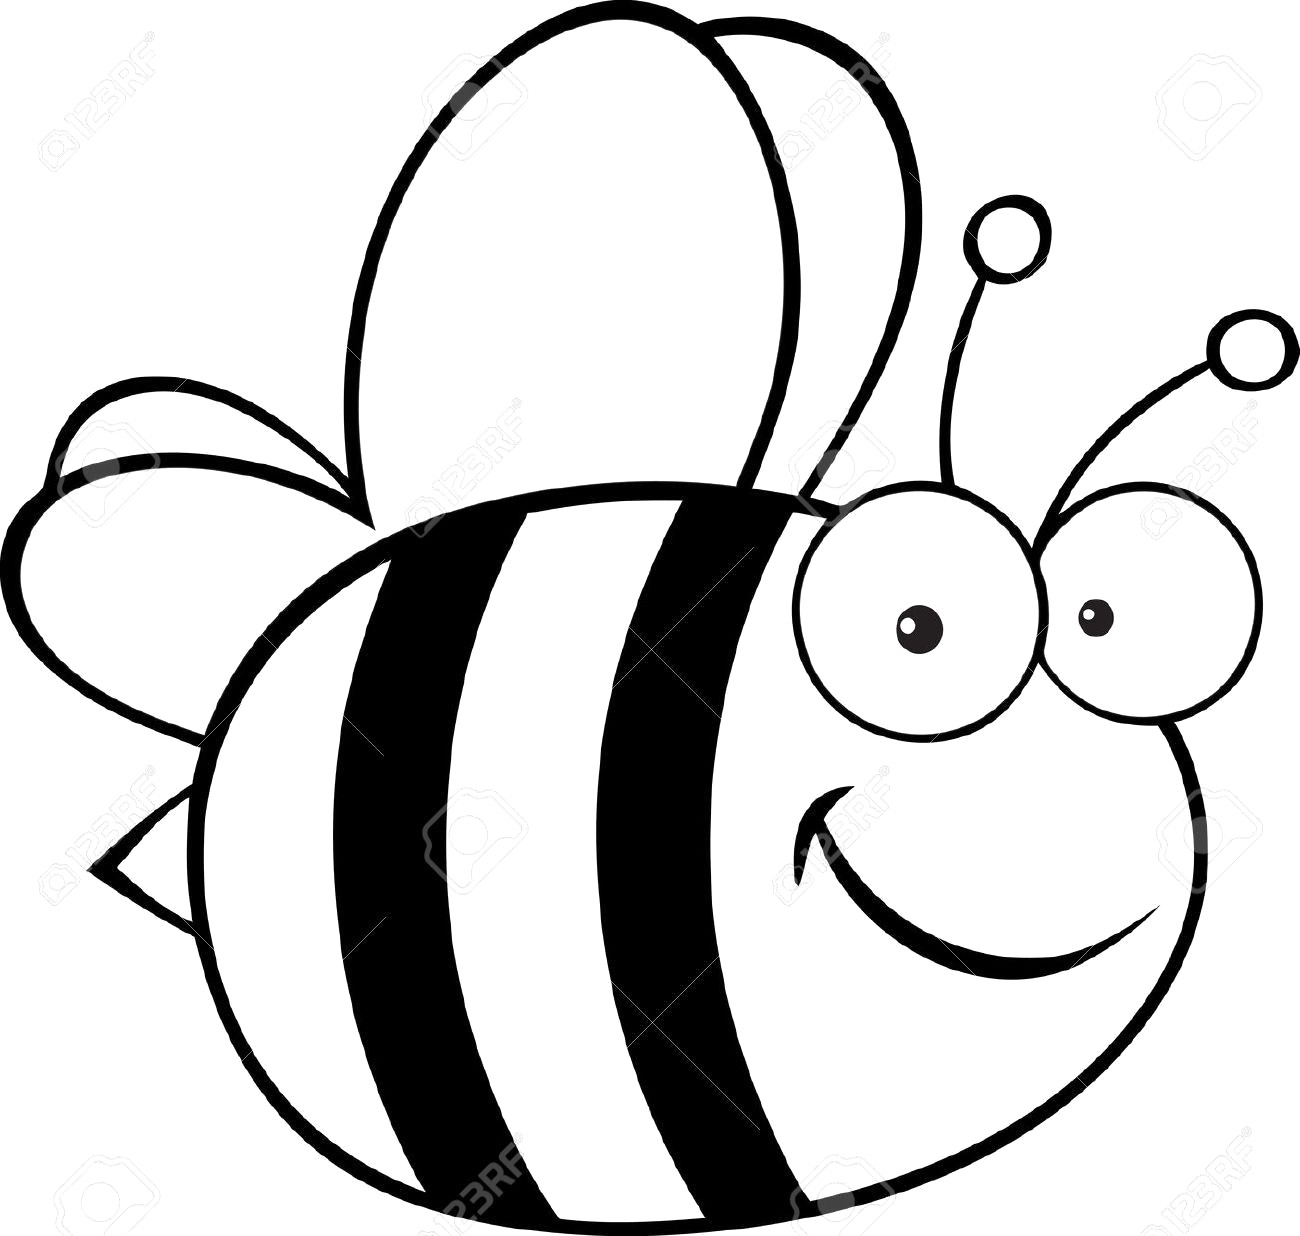 Free Bee Clipart Black And White 4 Clipart Station